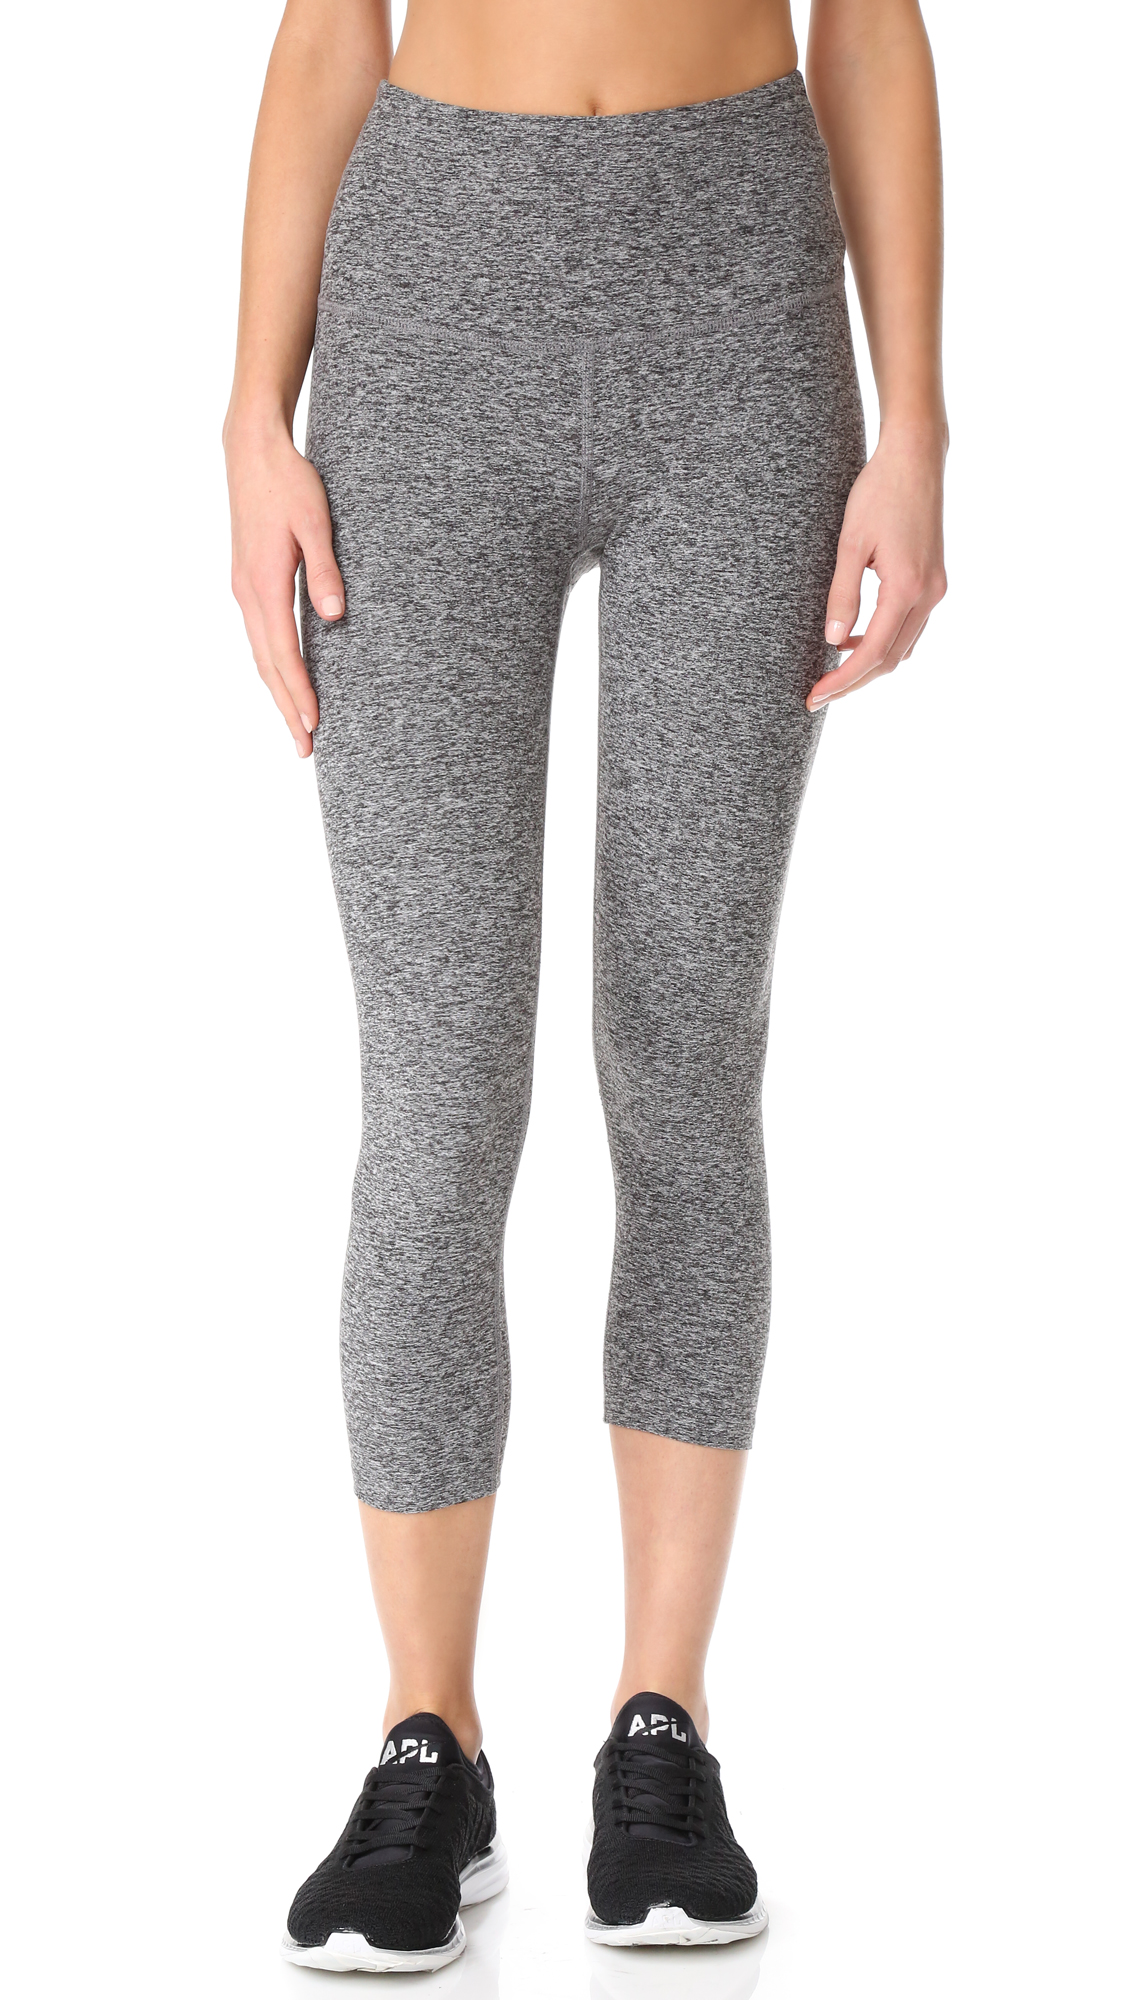 Beyond Yoga High Waist Capri Leggings In Black/White